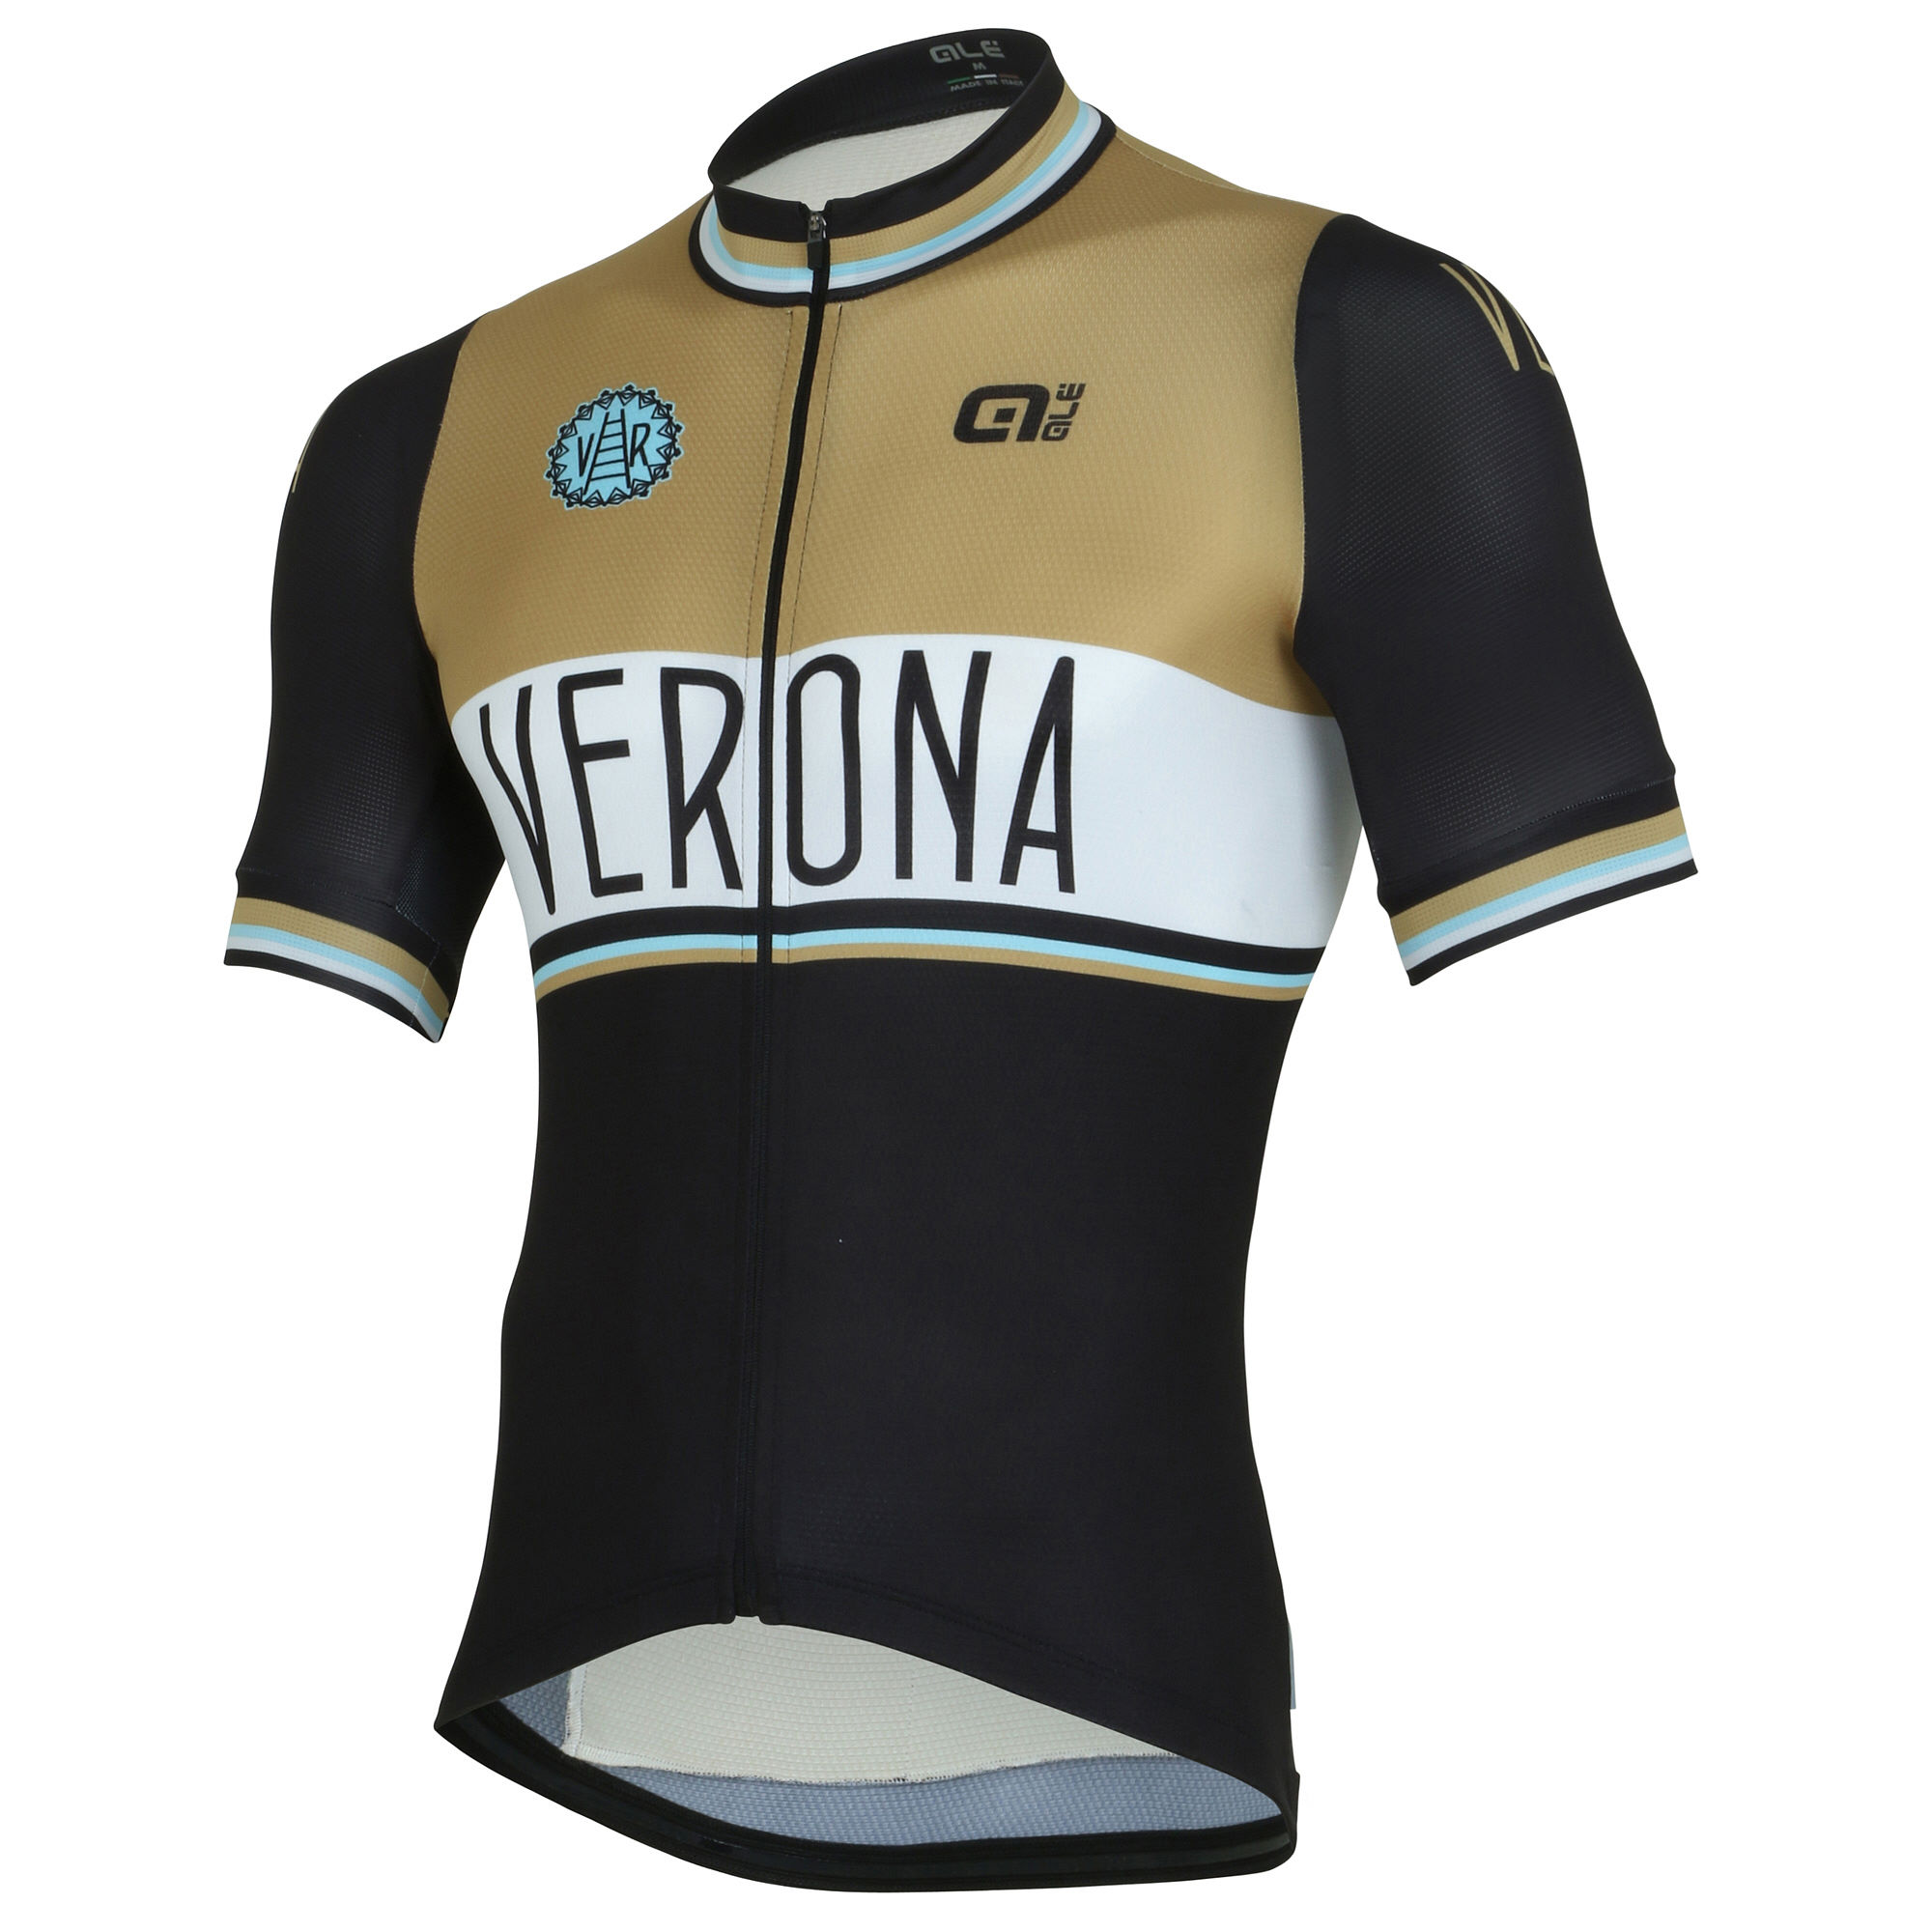 Al classic verona jersey short sleeve jerseys for Uniform verona